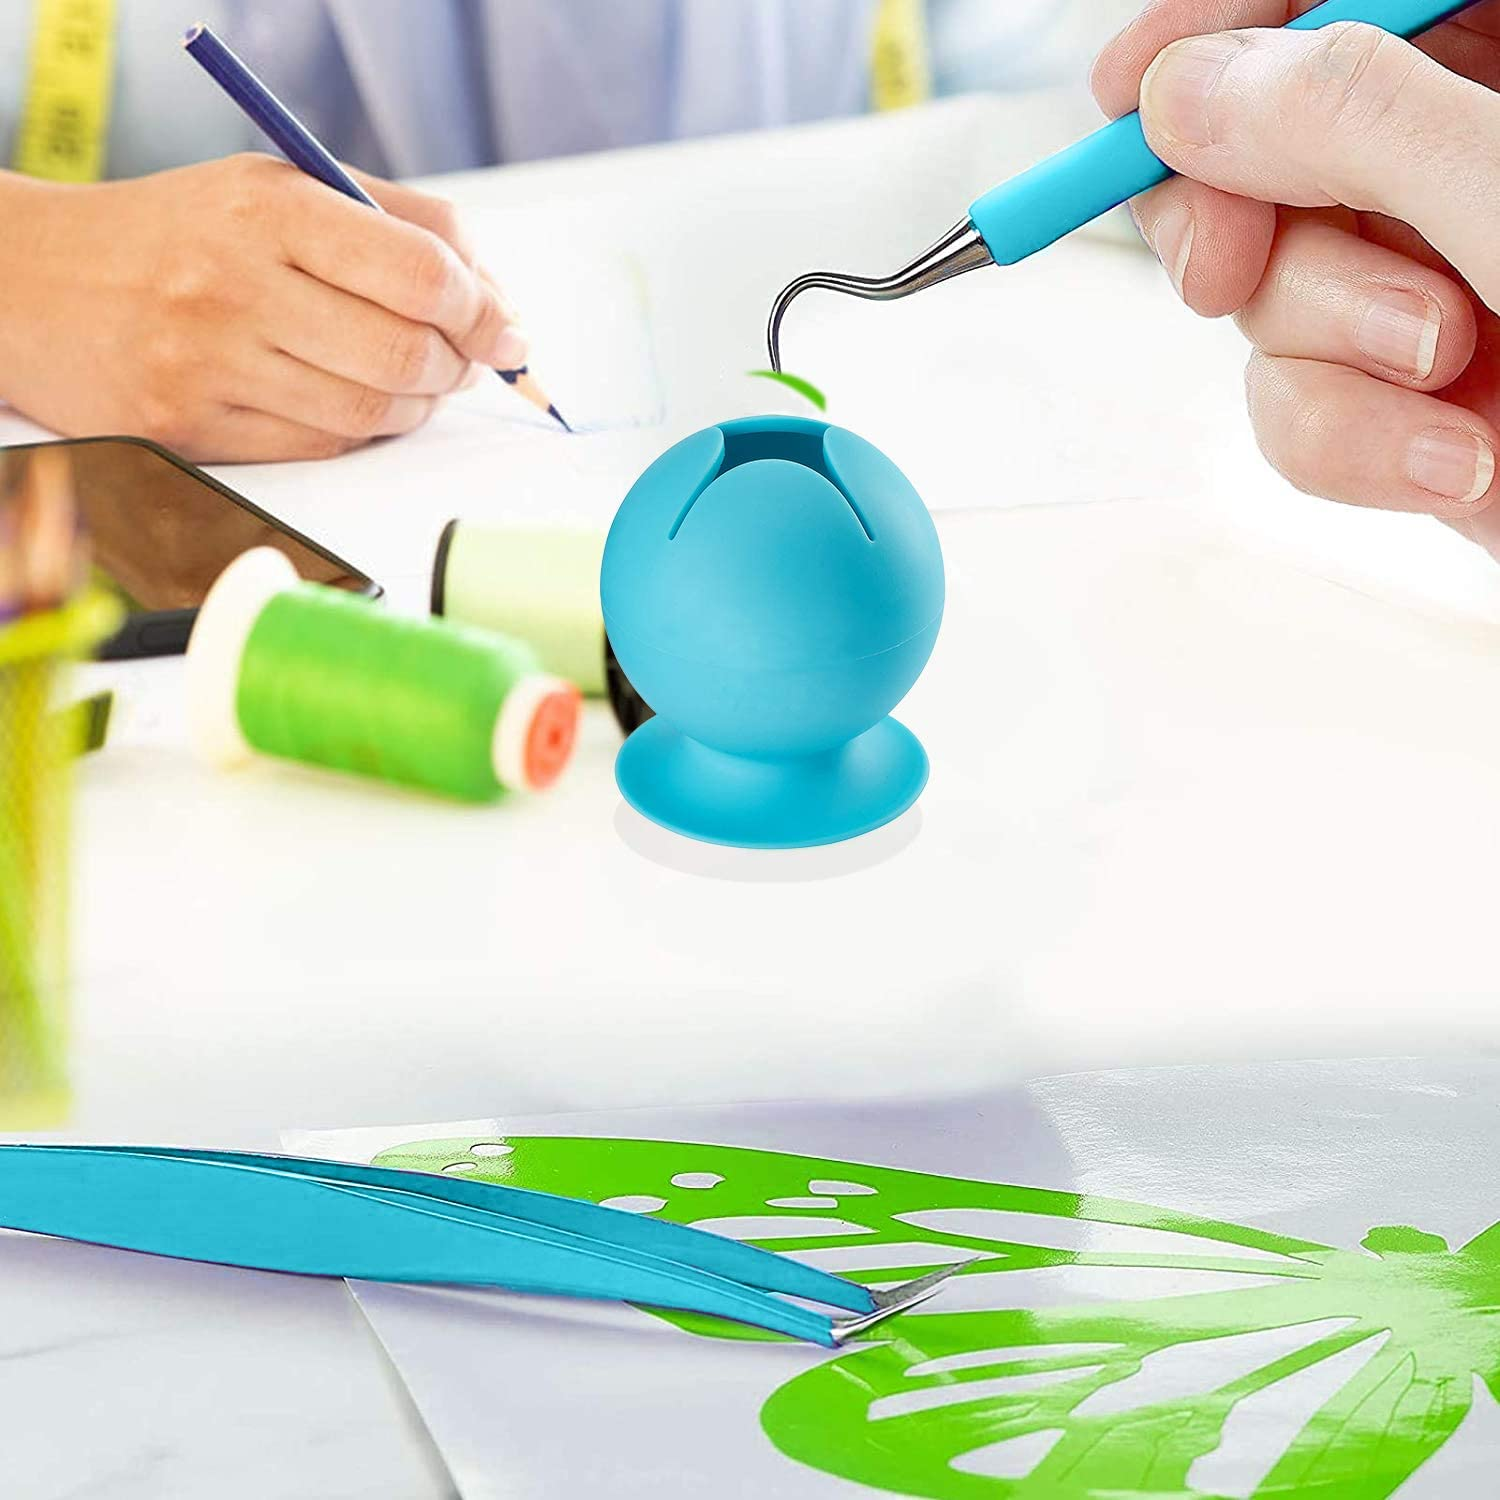 Soft Silicone Suctioned Can for Vinyl Disposing Vinyl Weeding Scrap Collector with Suction Cup Blue Cricut Weeding Tools for Vinyl